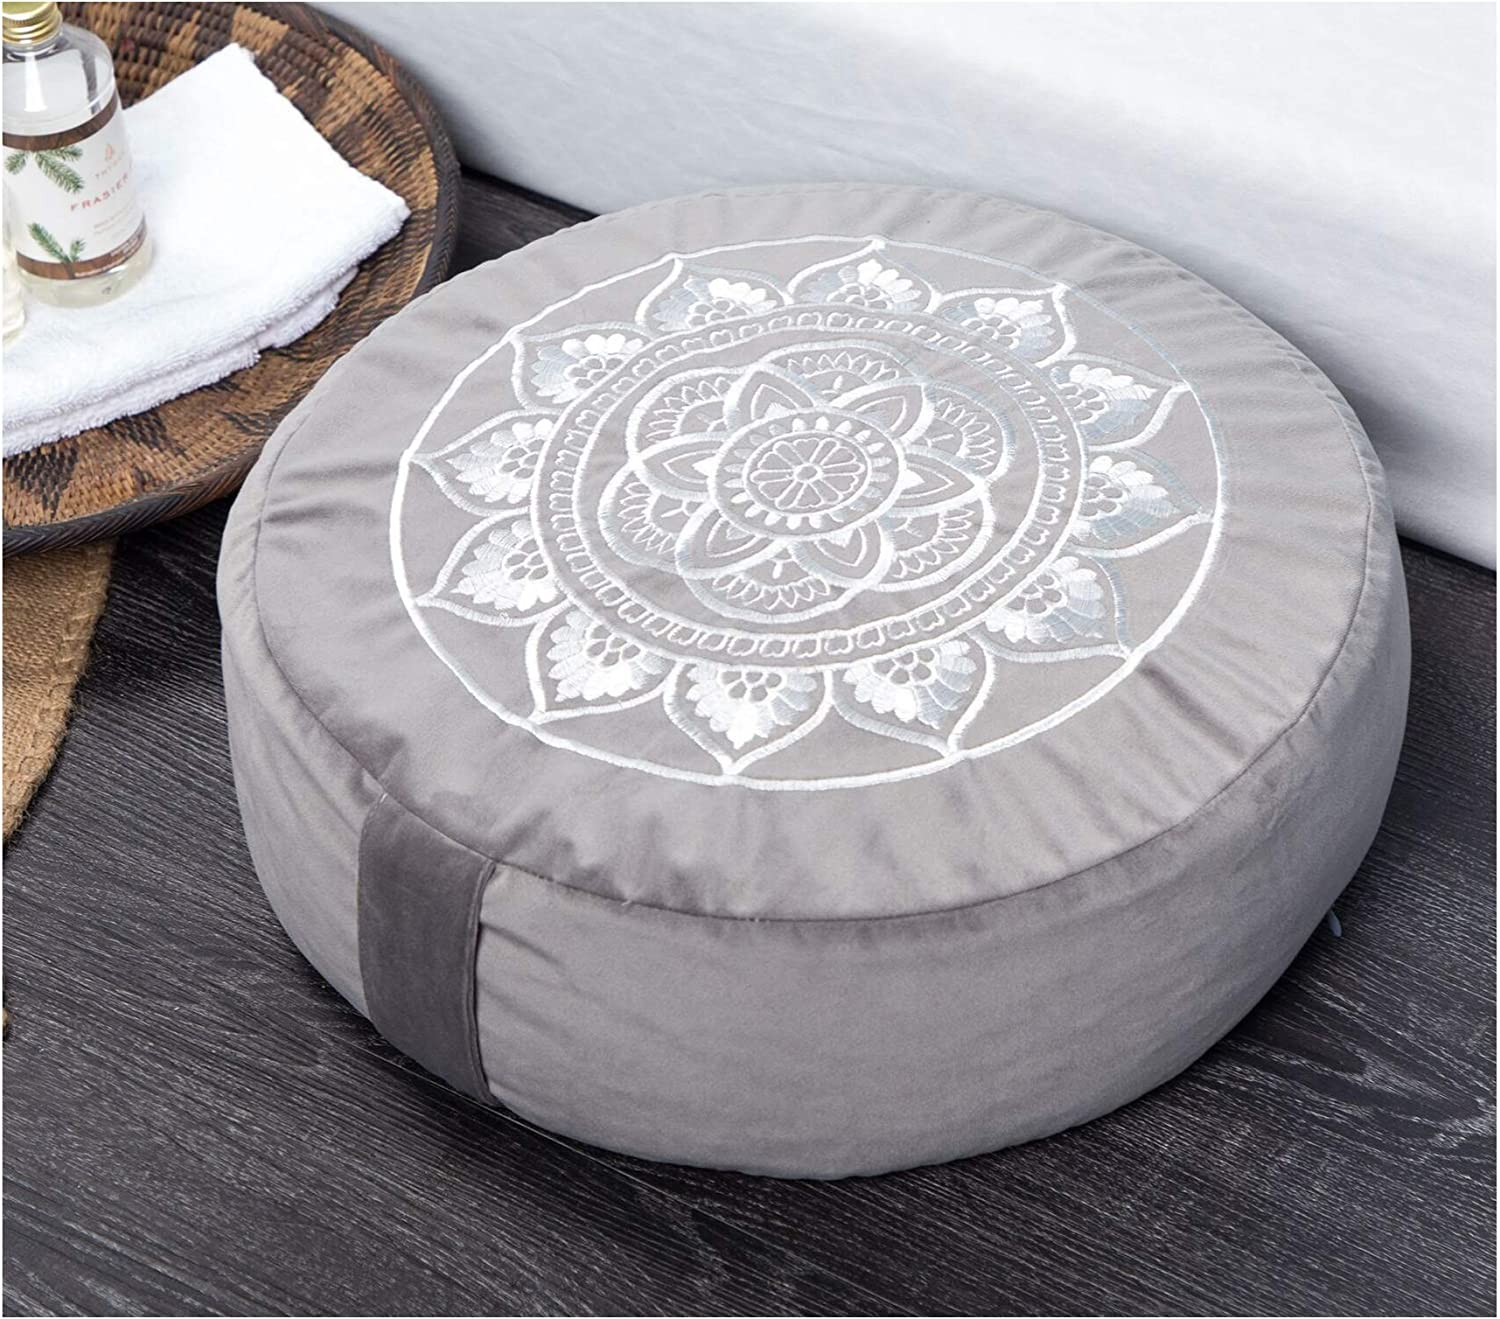 Florensi Meditation Cushion (16